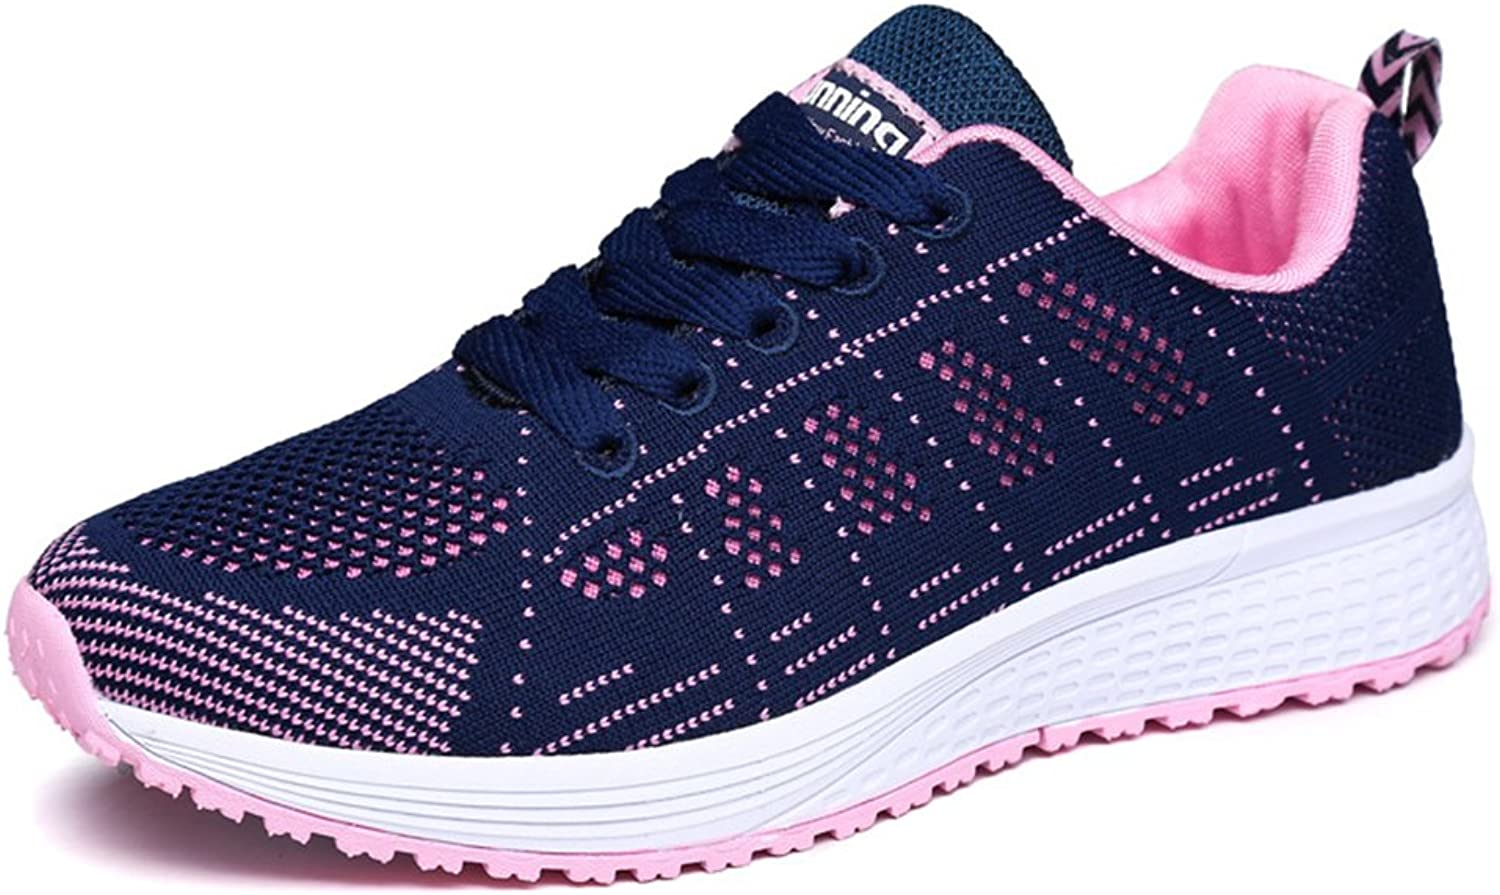 BERTERI Women's Running shoes Casual Lightweight Breathable Athletic Sneakers